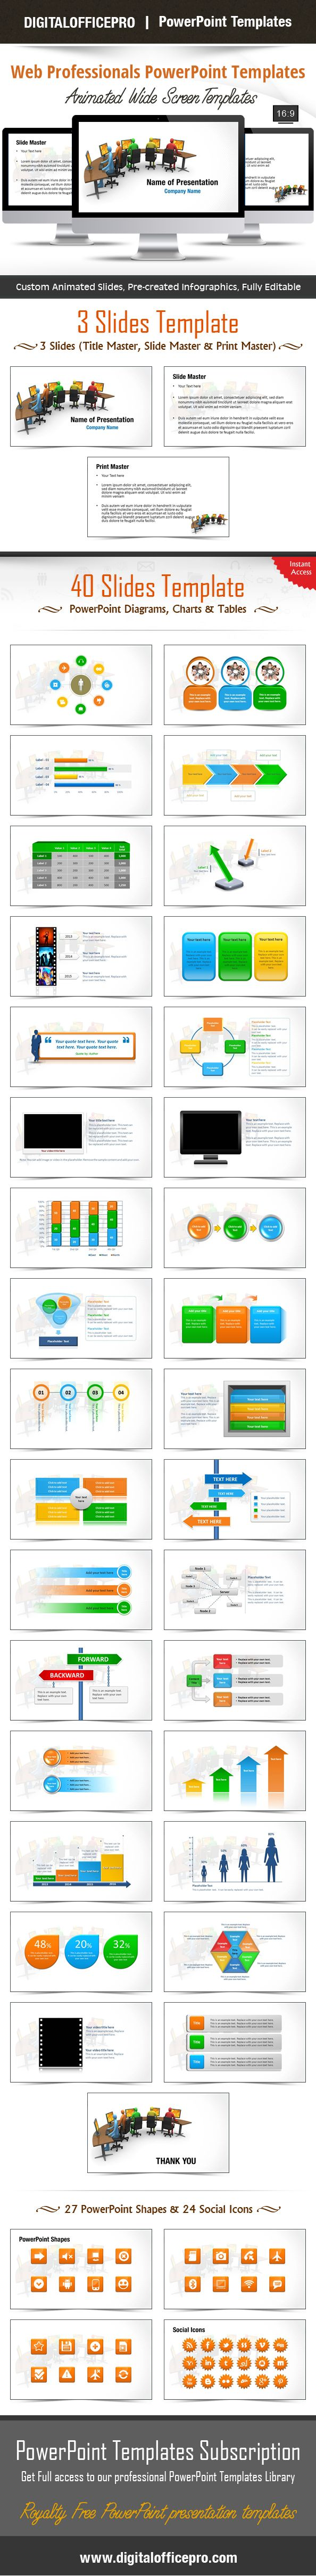 11 best business powerpoint templates images on pinterest impress and engage your audience with web professionals powerpoint template and web professionals powerpoint backgrounds from toneelgroepblik Choice Image